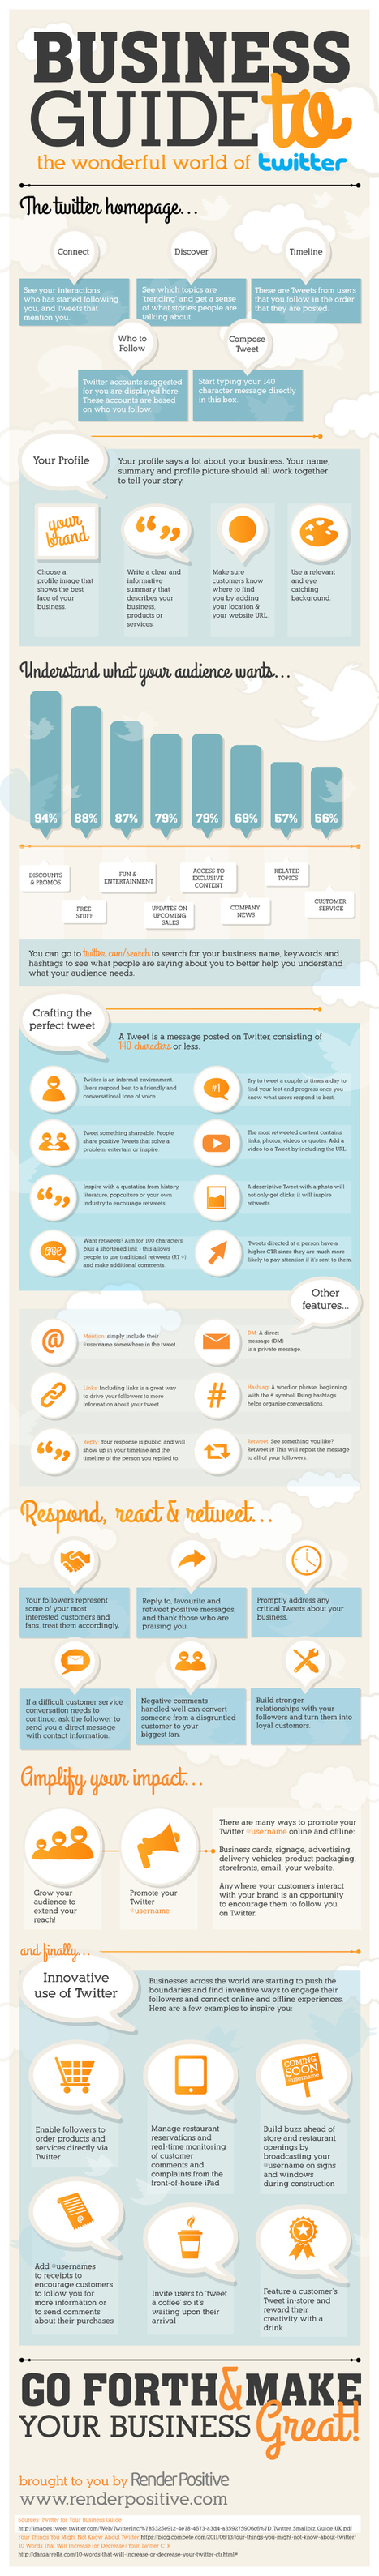 Twitter Guide for New Businesses [infographic] | Personal Branding and Professional networks | Scoop.it